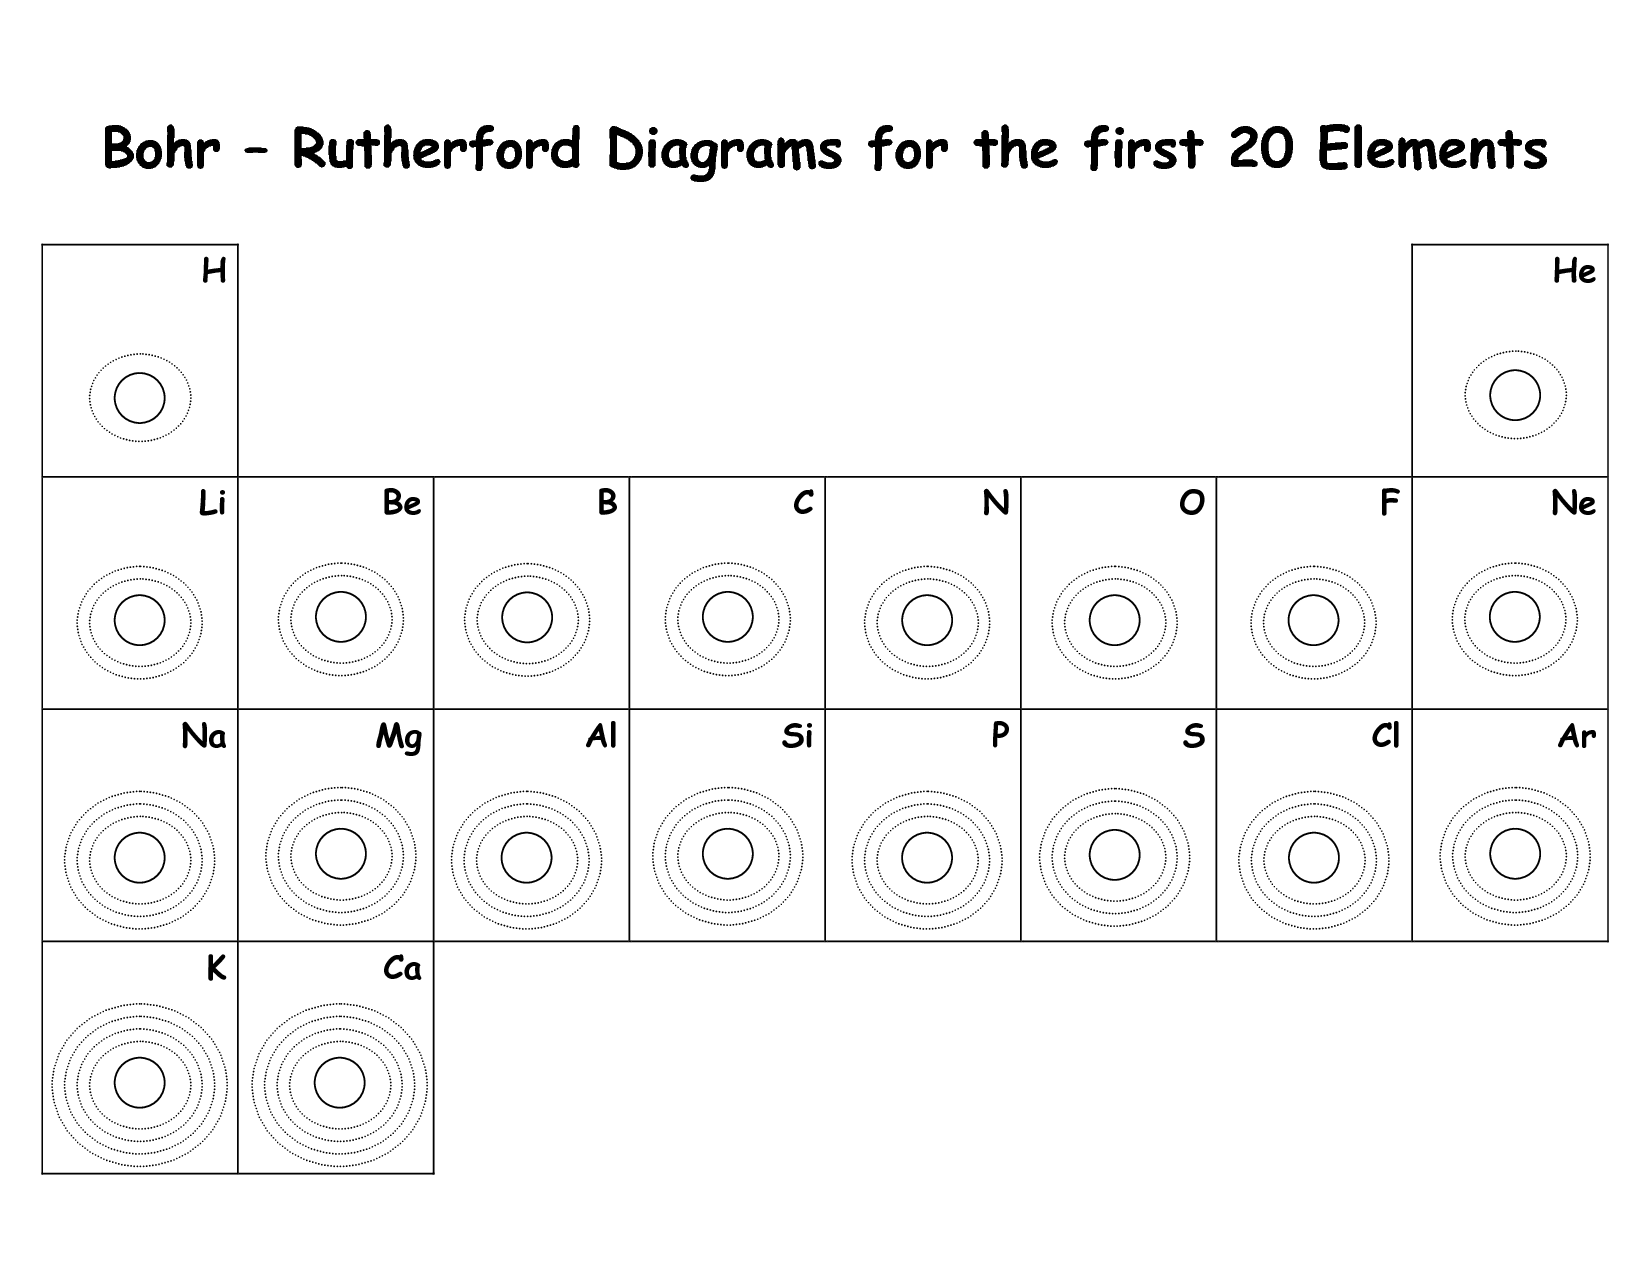 blank bohr model worksheet - blank fill in for first 20 elements ...